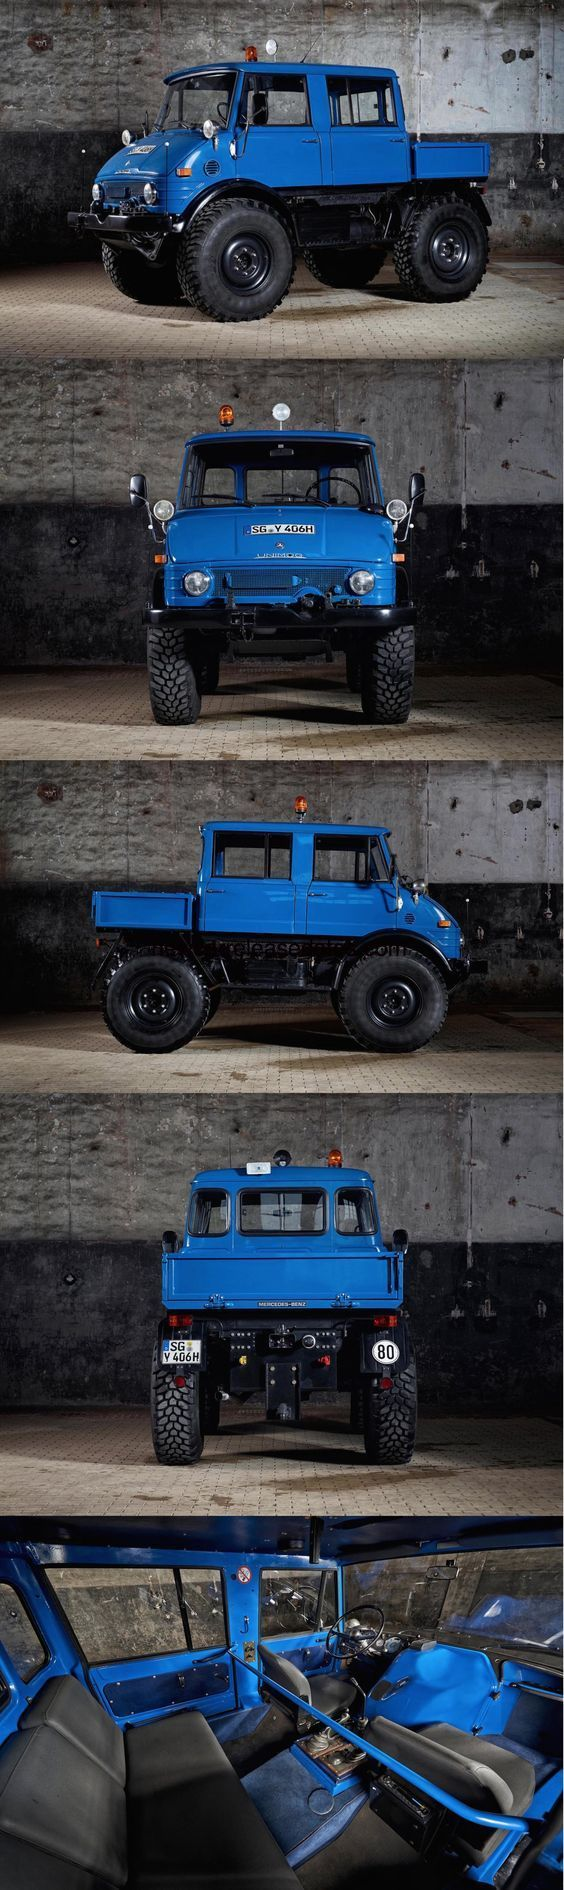 "ALL NEW "" 2017 MERCEDES-BENZ UNIMOG 406"", 2017 Concept Car Photos and Images, 2017 Cars"